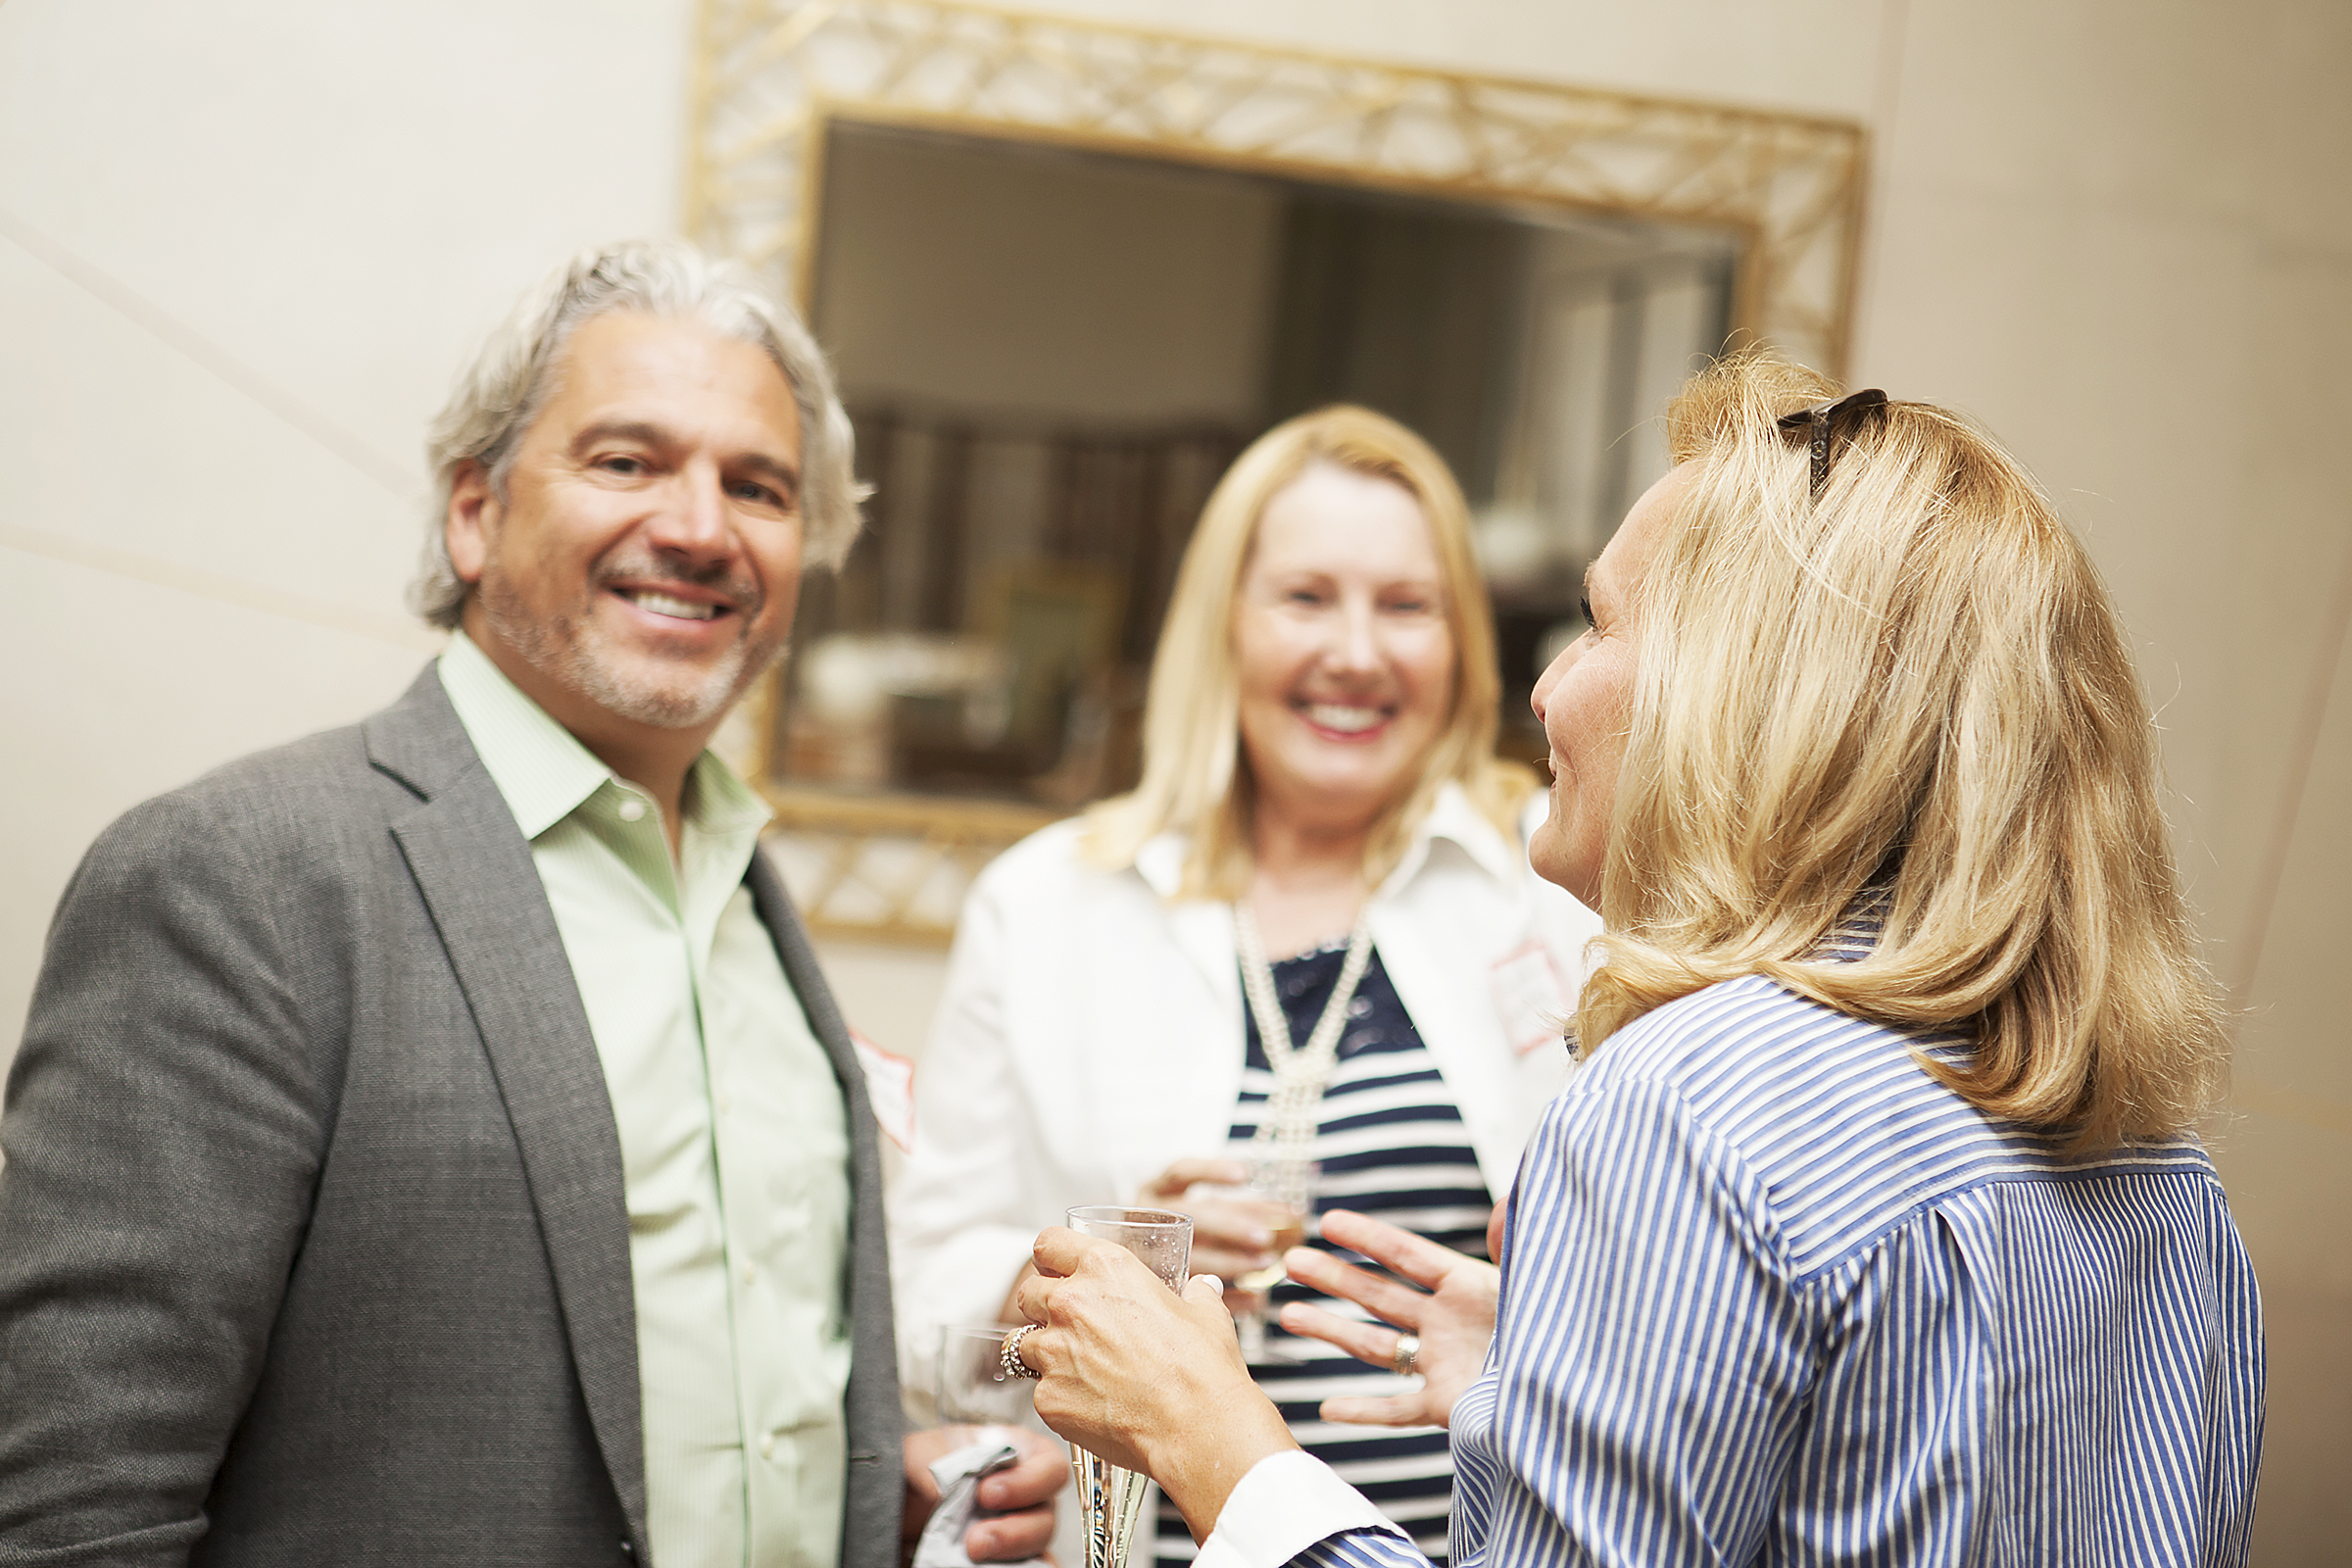 From left to right :  Bill Weidner, Director of Business Development for  Sason Builders , shares a moment with Susan Arann, ASID, NCIDQ, of  American & International Designs Inc ., and Donna Herman, Director at   Luxe Interiors + Design .